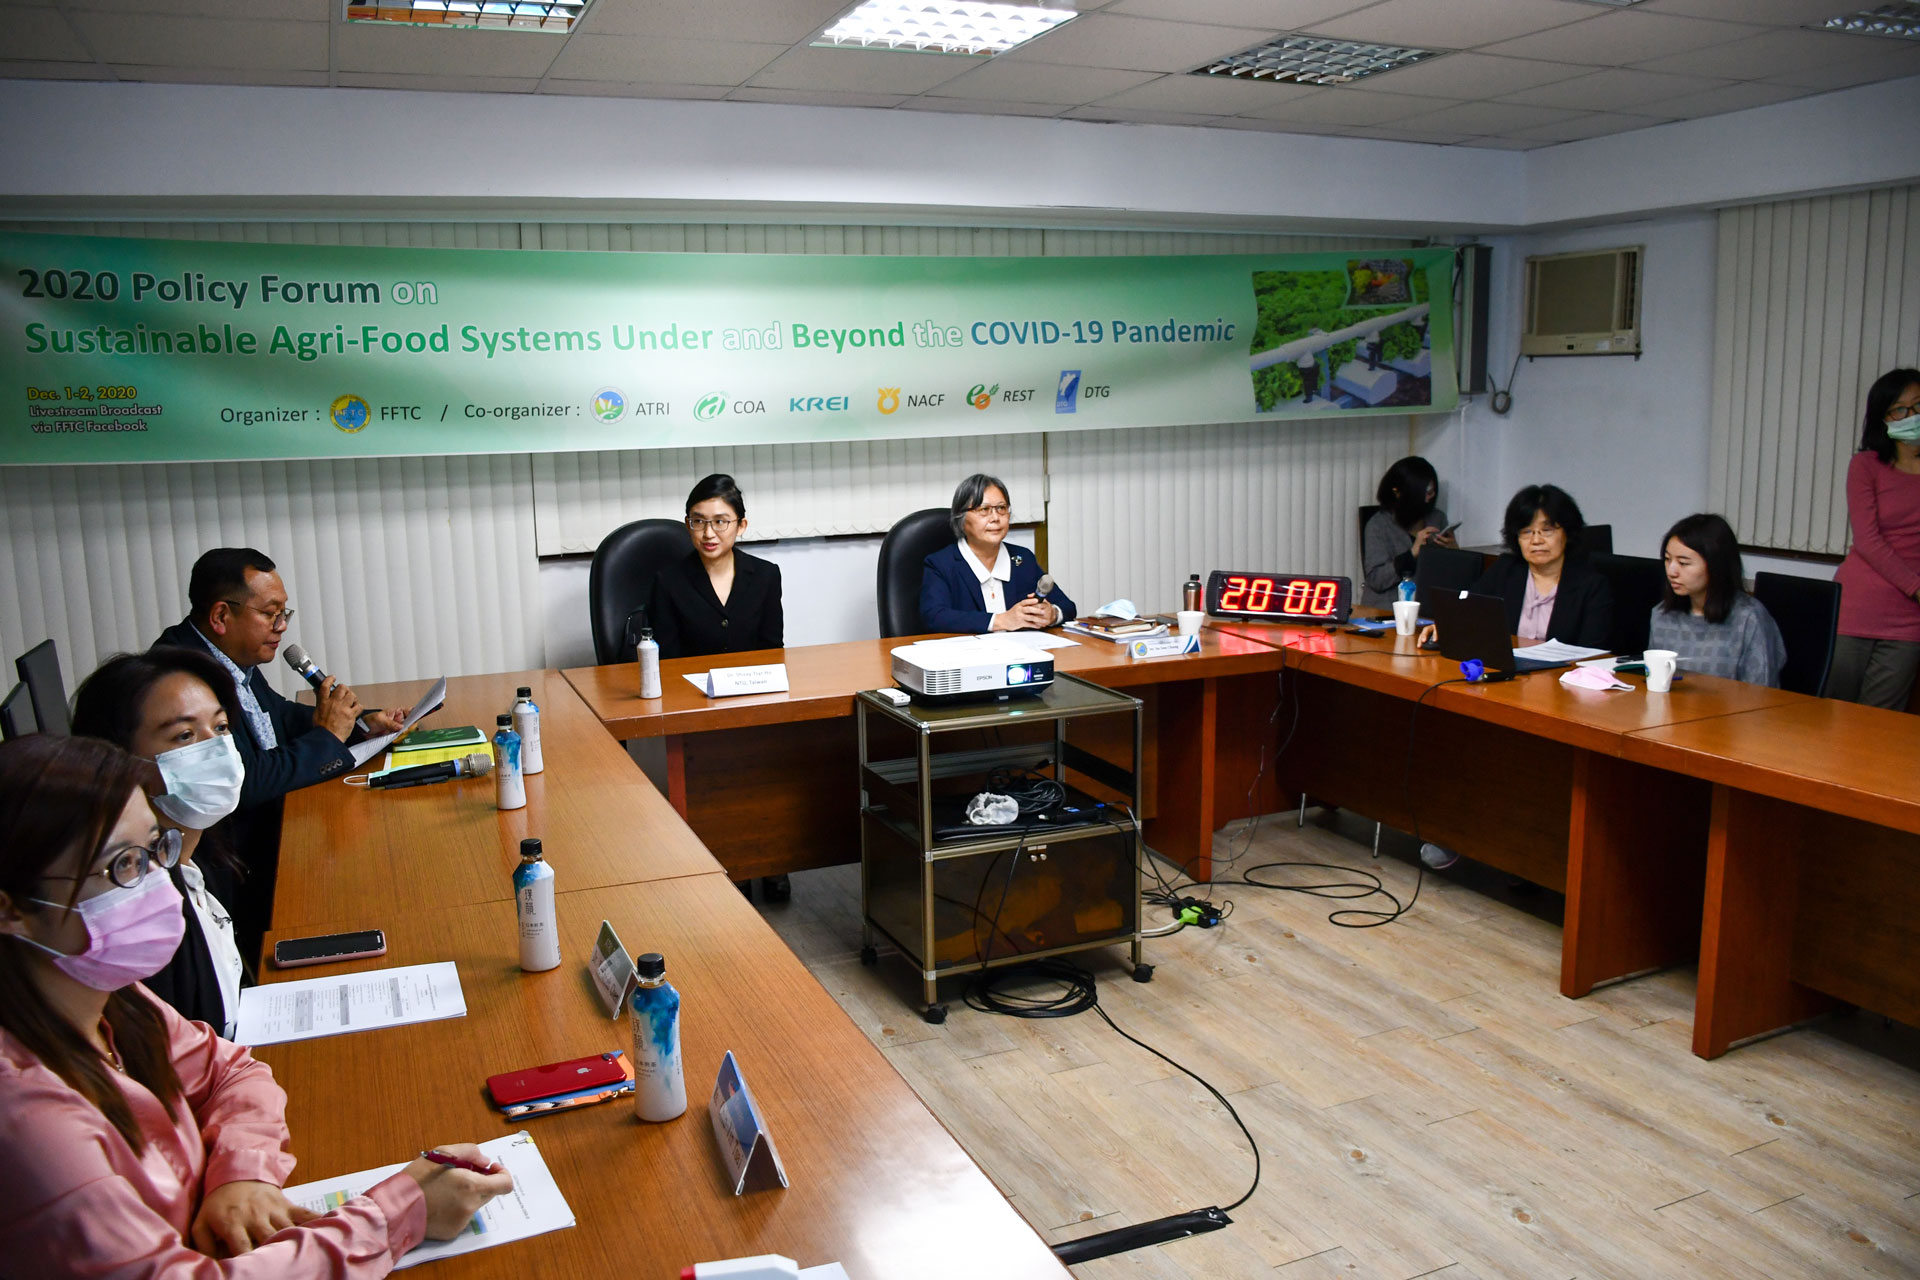 FFTC-AP forum tackles building of agri-food system resilience to cope with COVID-19